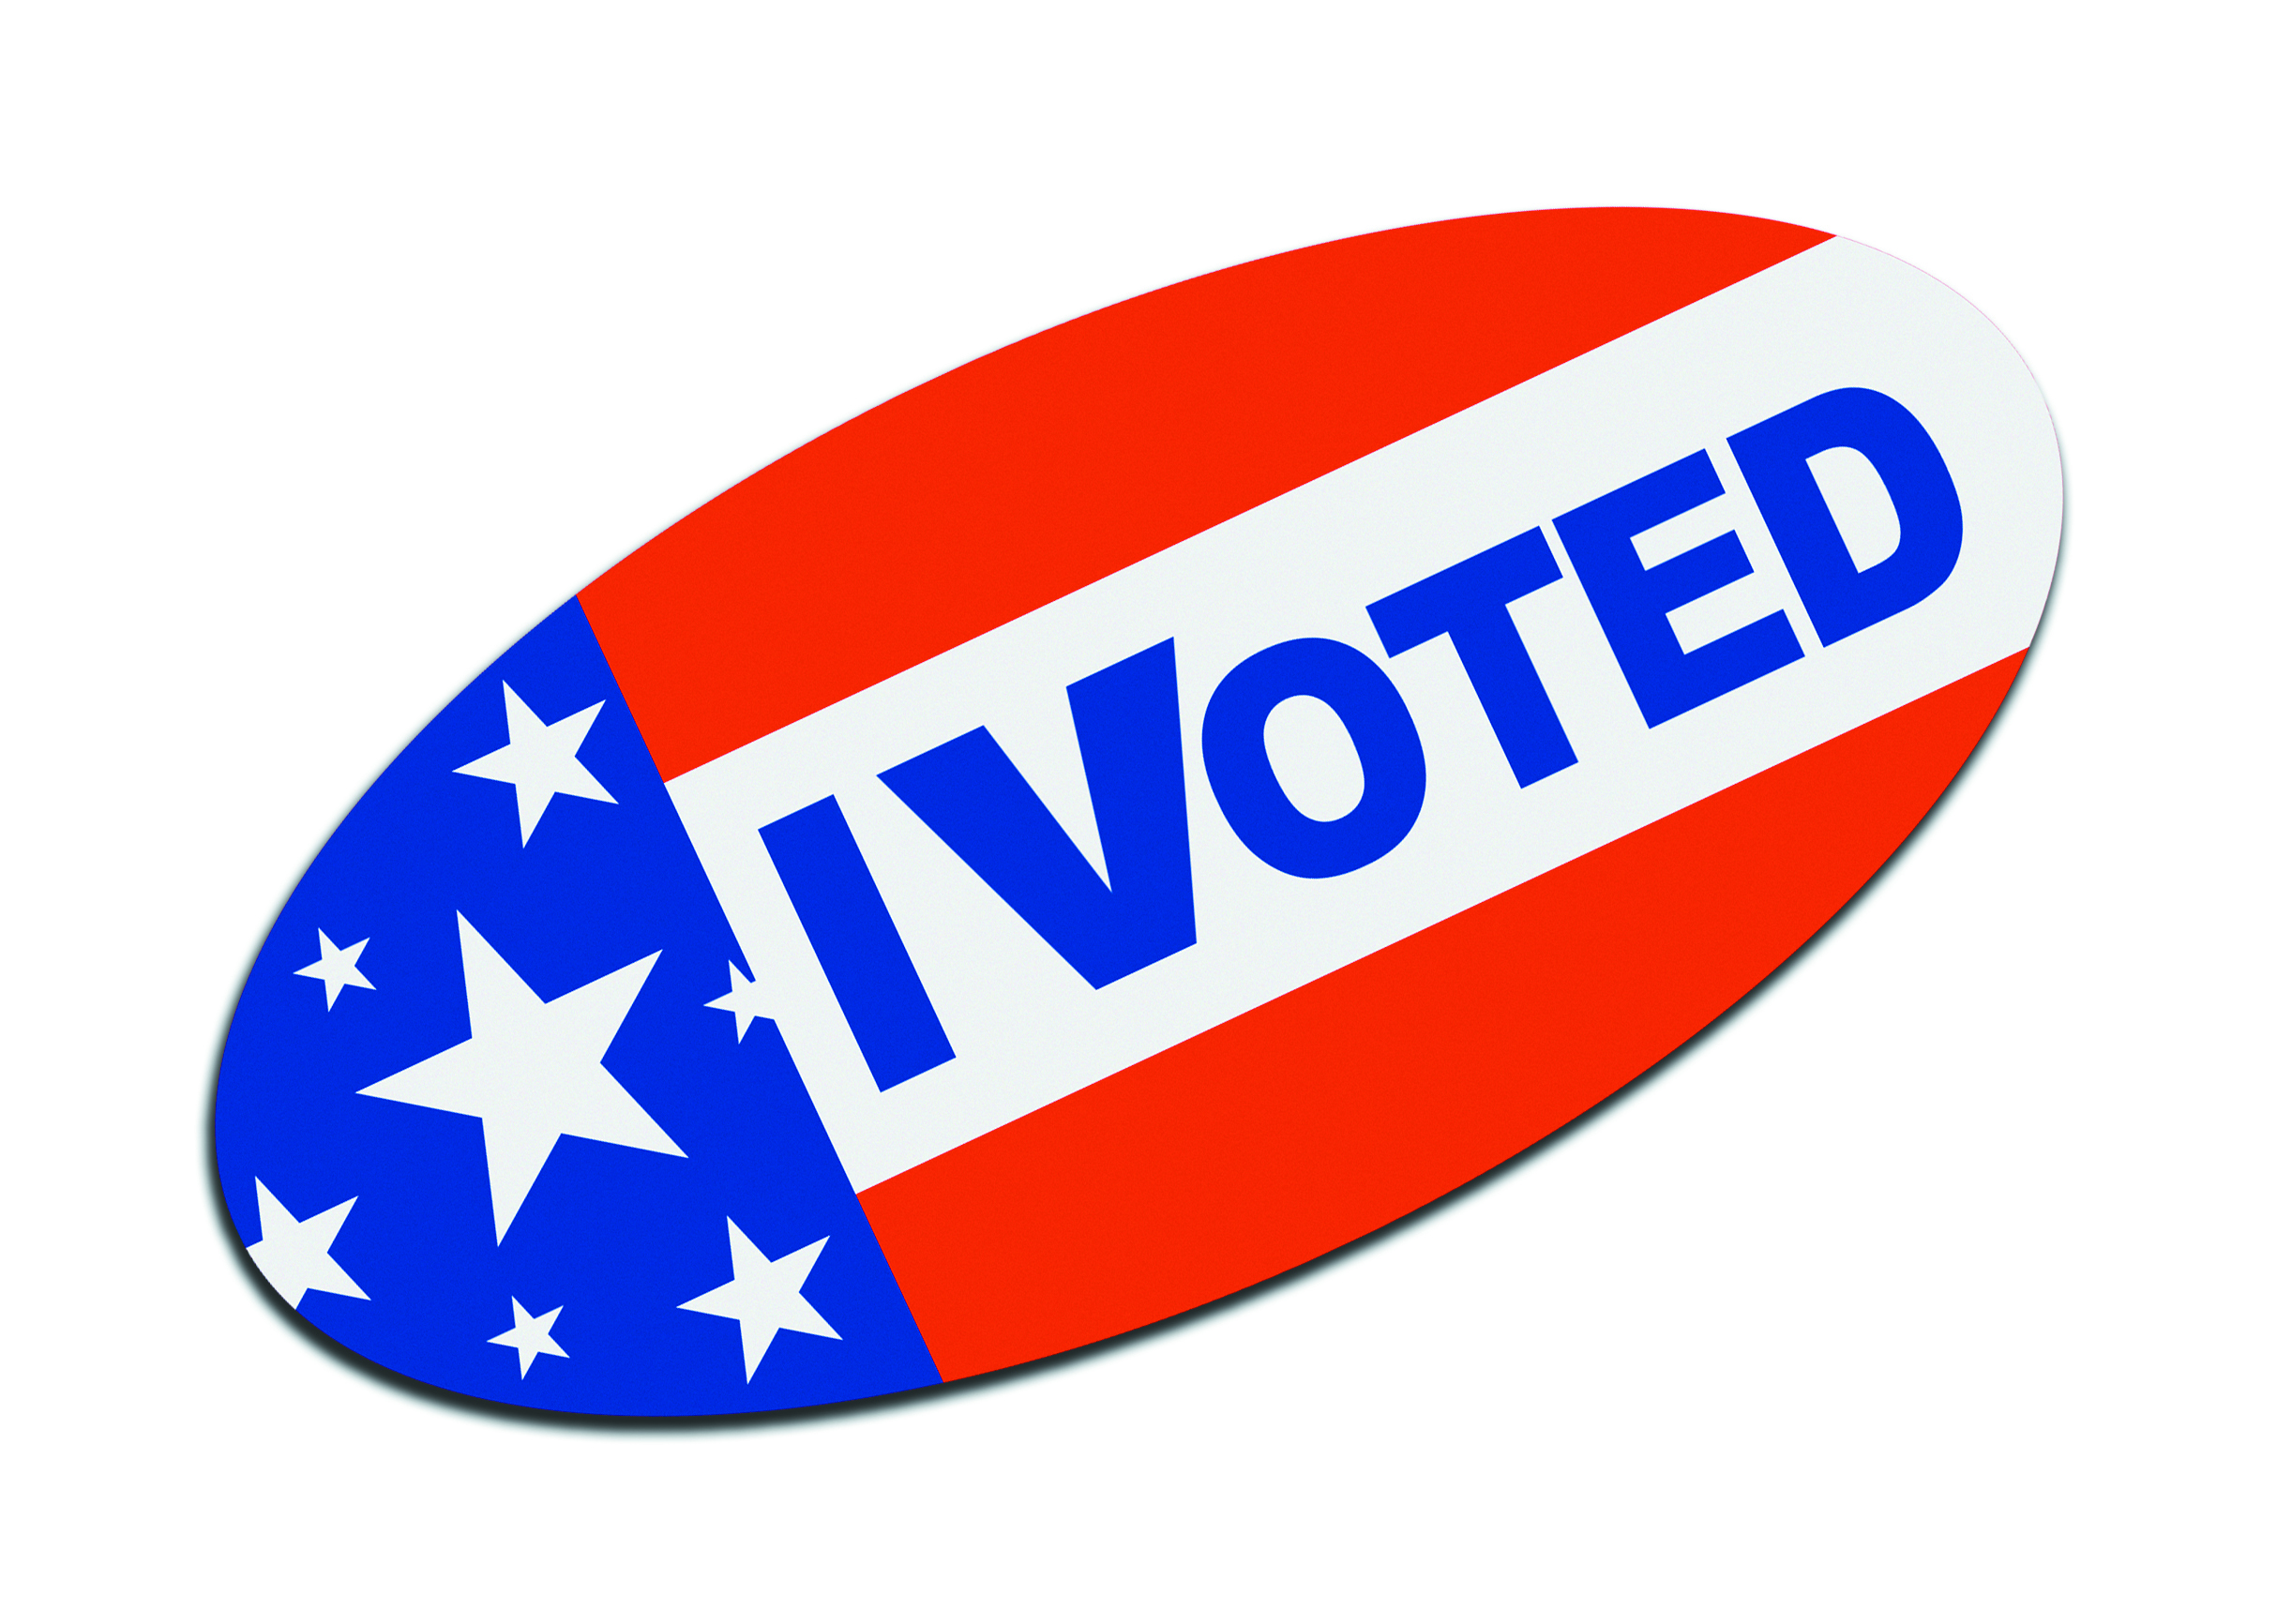 I Voted American USA Sticker Isolated on White Background.